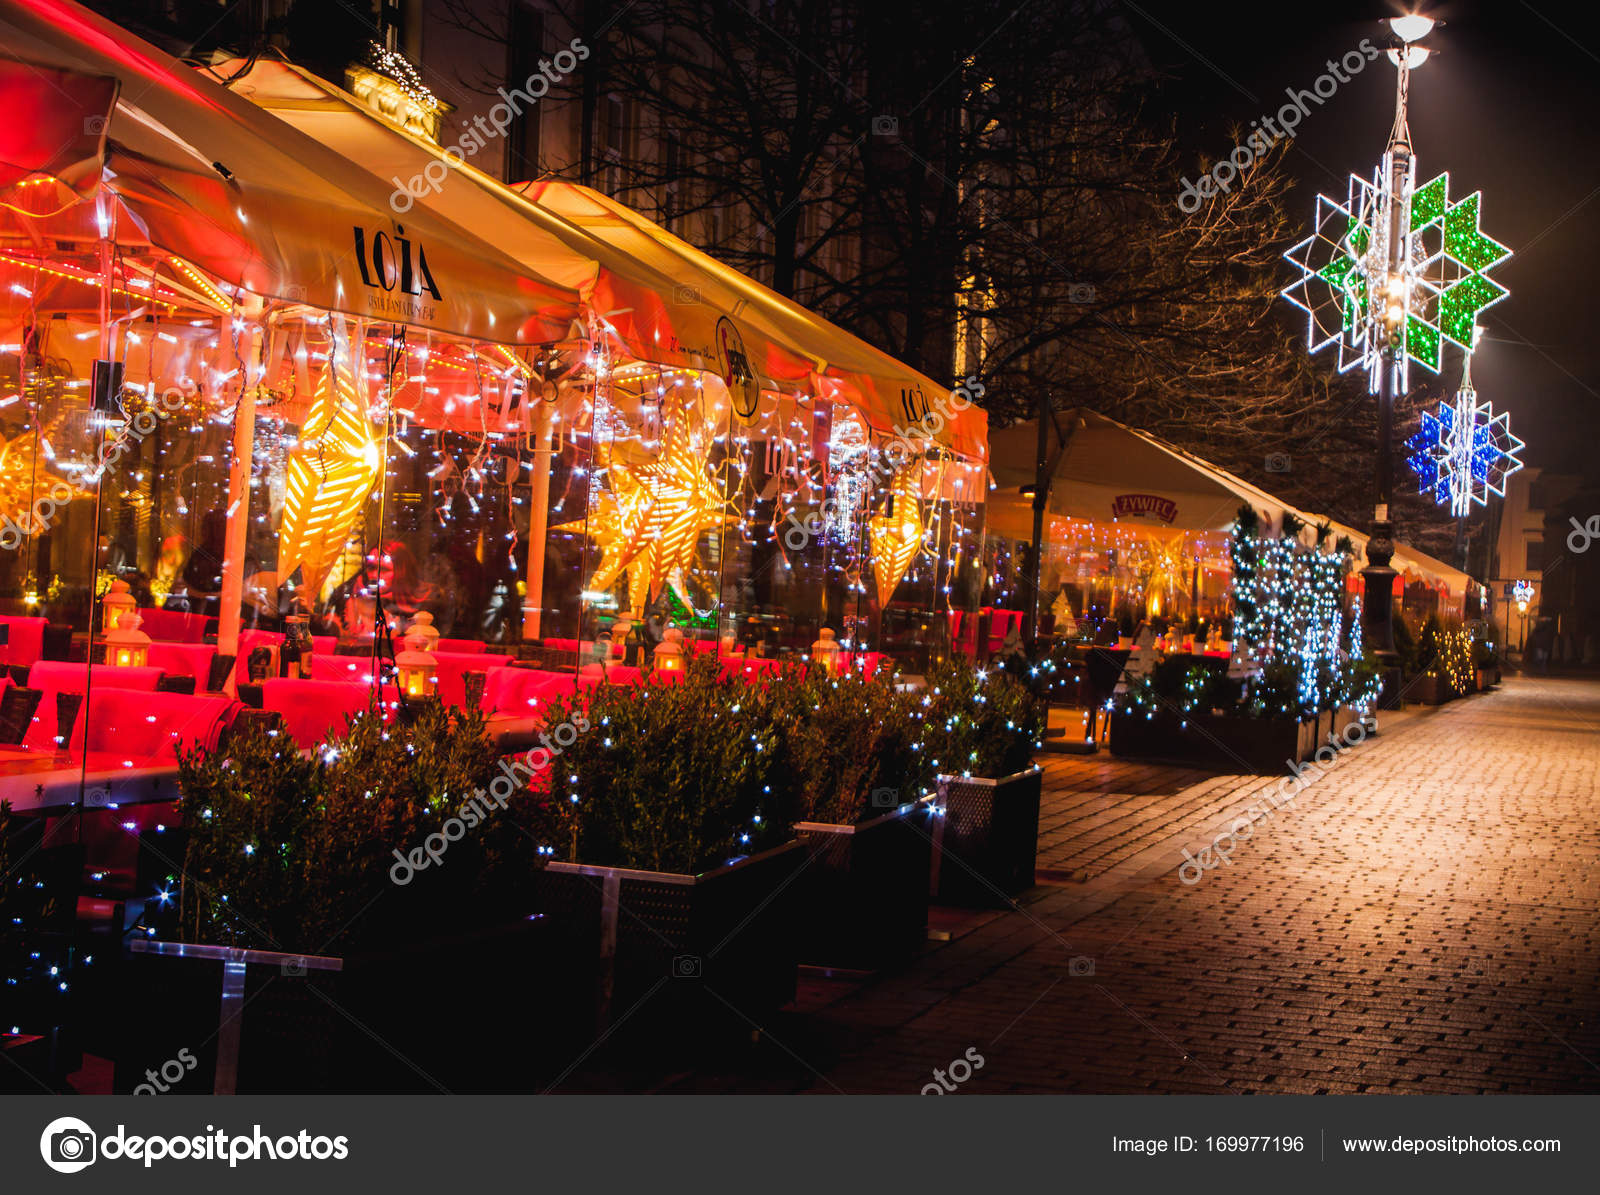 restaurant christmas decorations stock photo - Restaurant Christmas Decorations